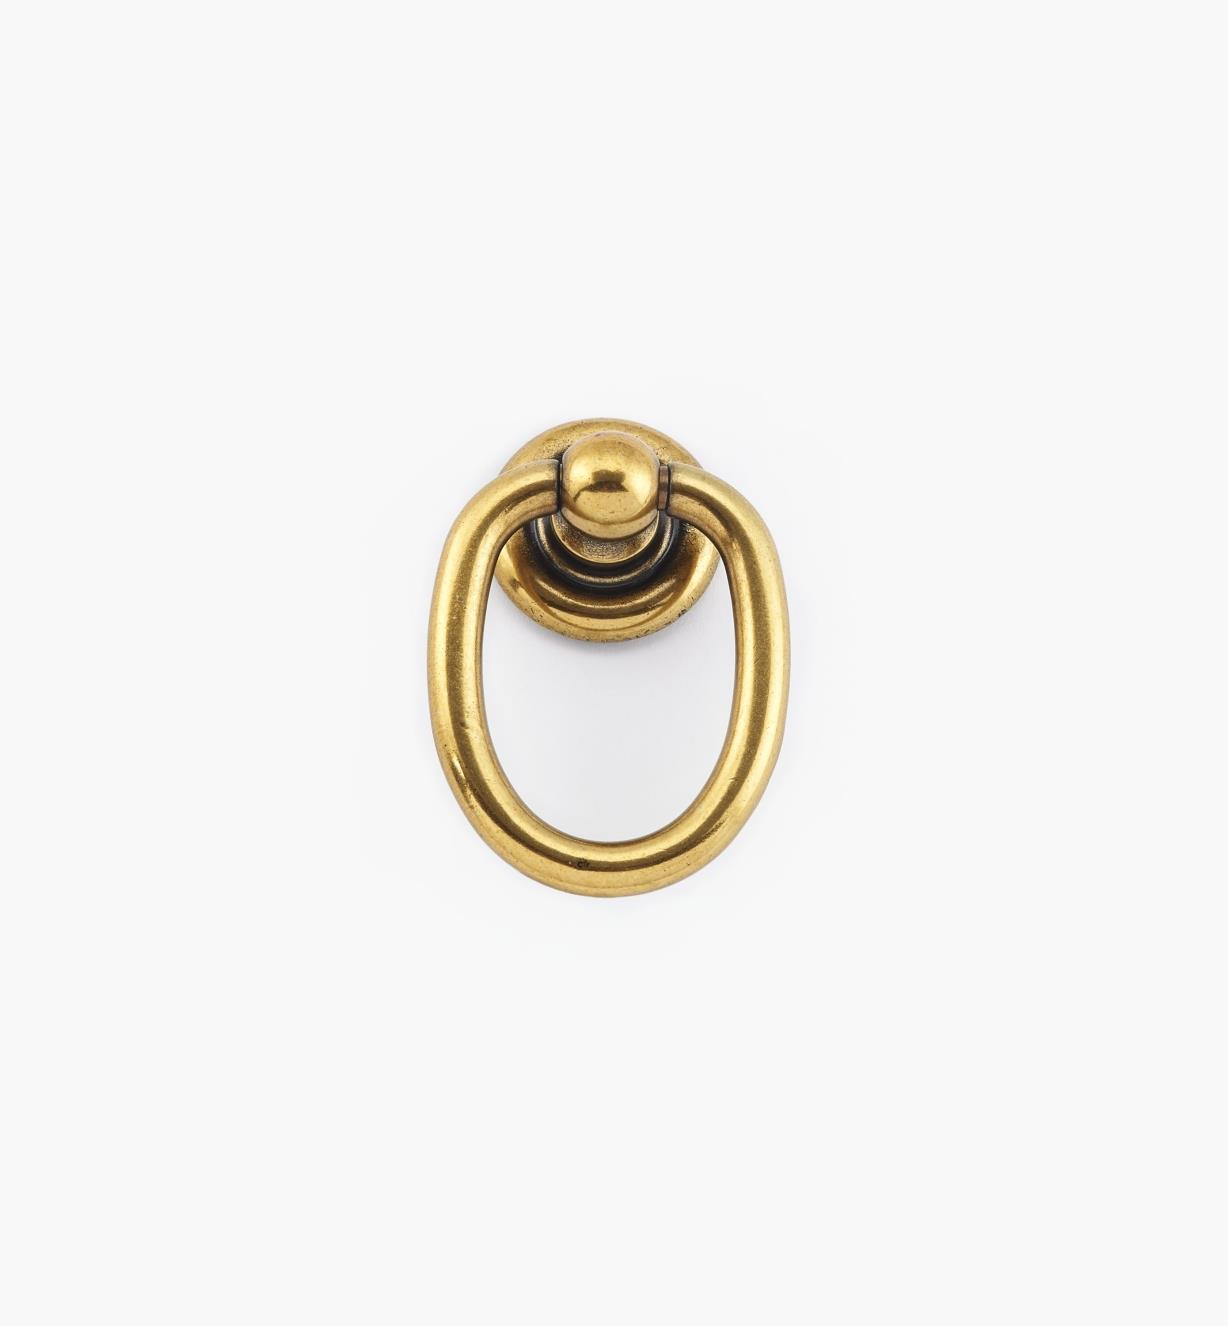 01X4068 - Burnished Bronze Ring Pull